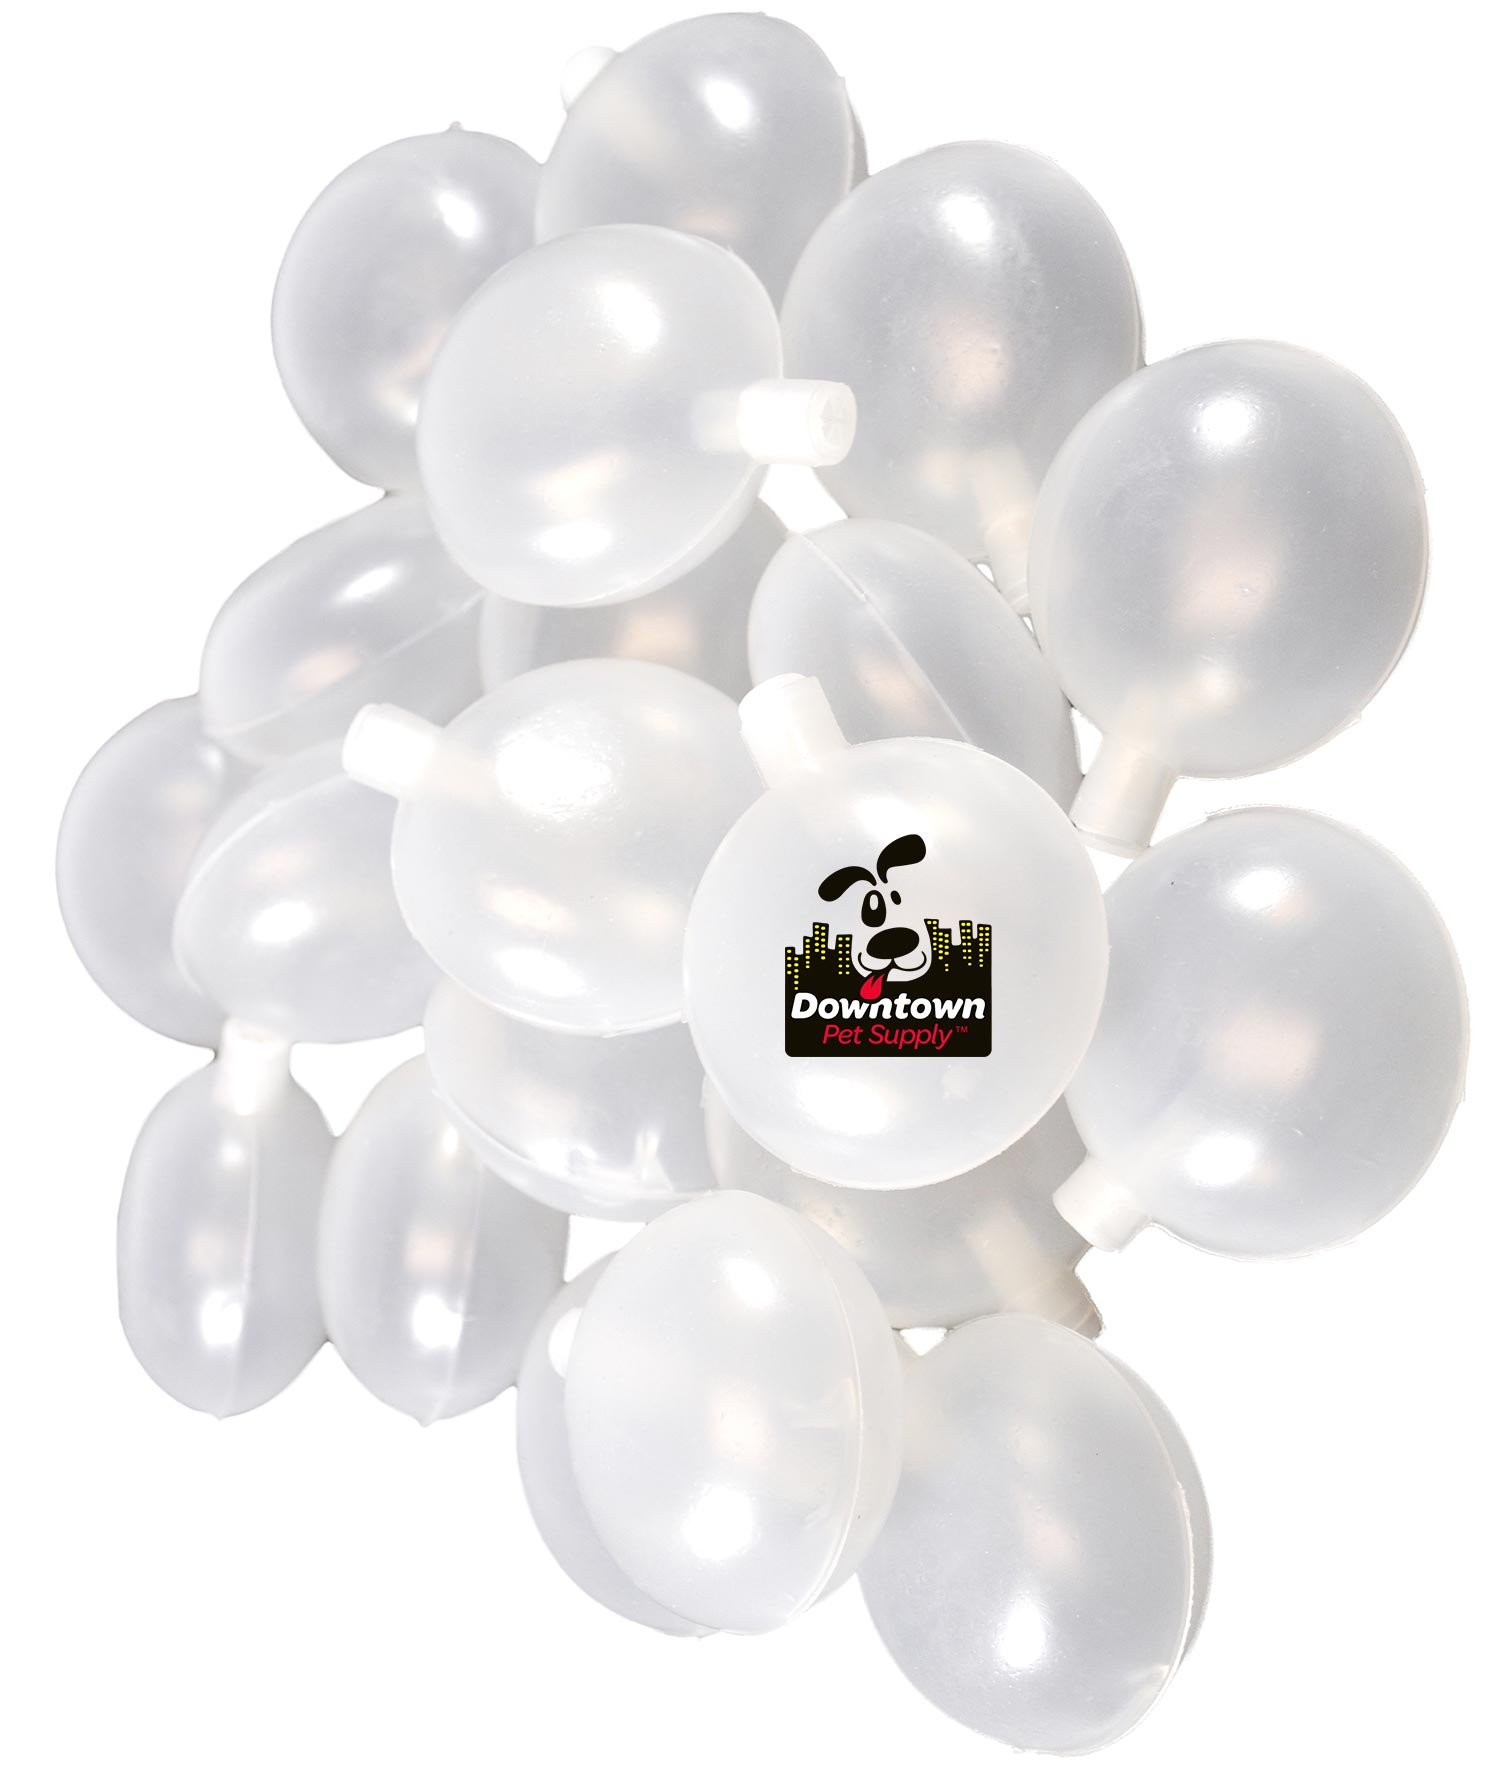 140 Replacement Squeakers, Medium,  by Downtown Pet Supply by Downtown Pet Supply (Image #1)